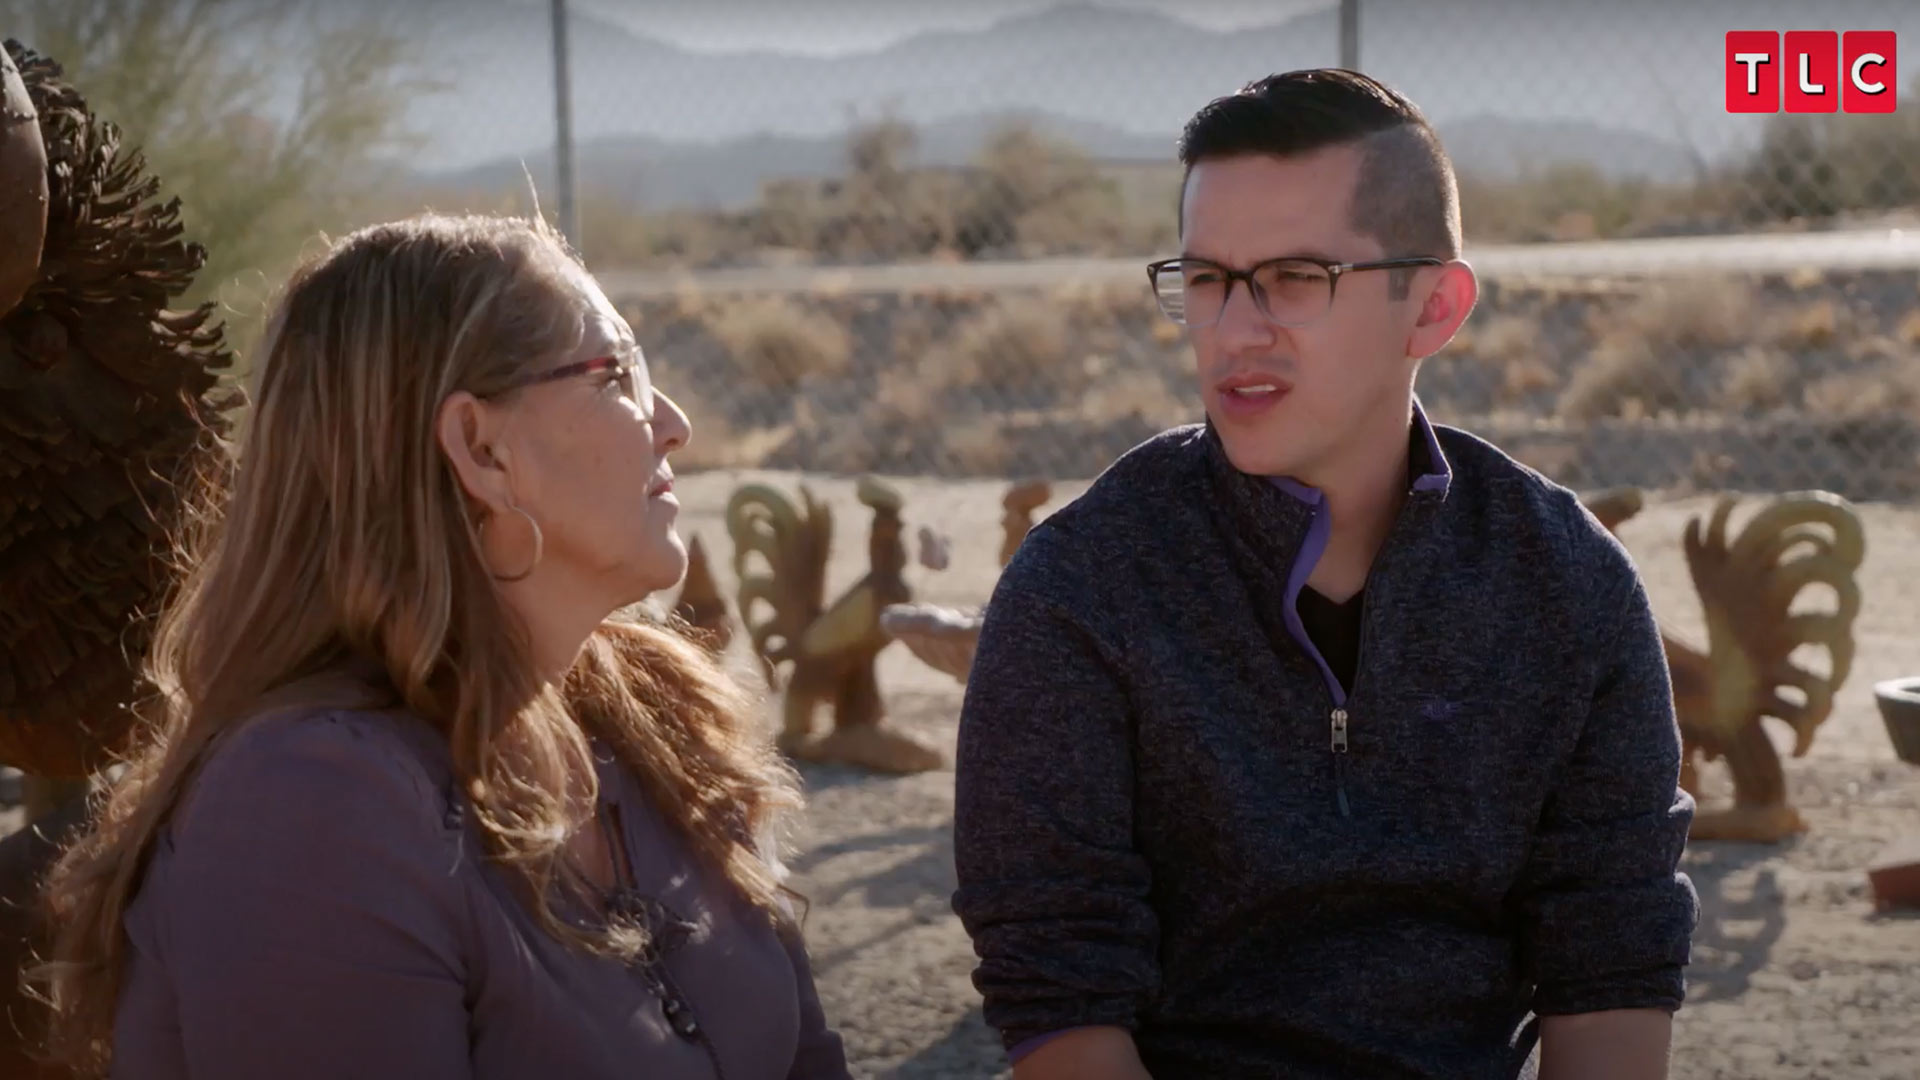 90 Day Fiance's Armando confronts his mother about why she hid his engagement from his father